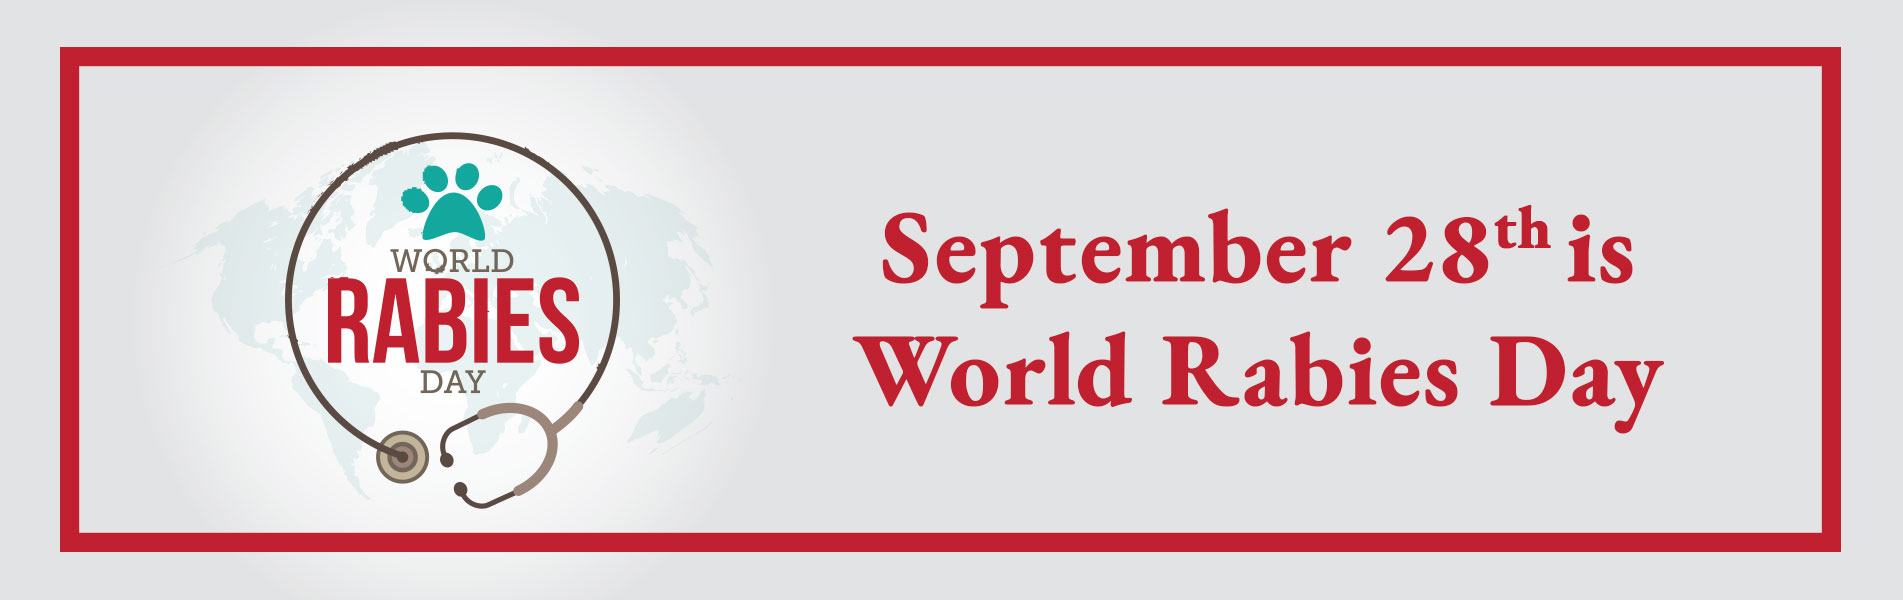 September 28th is World Rabies Day